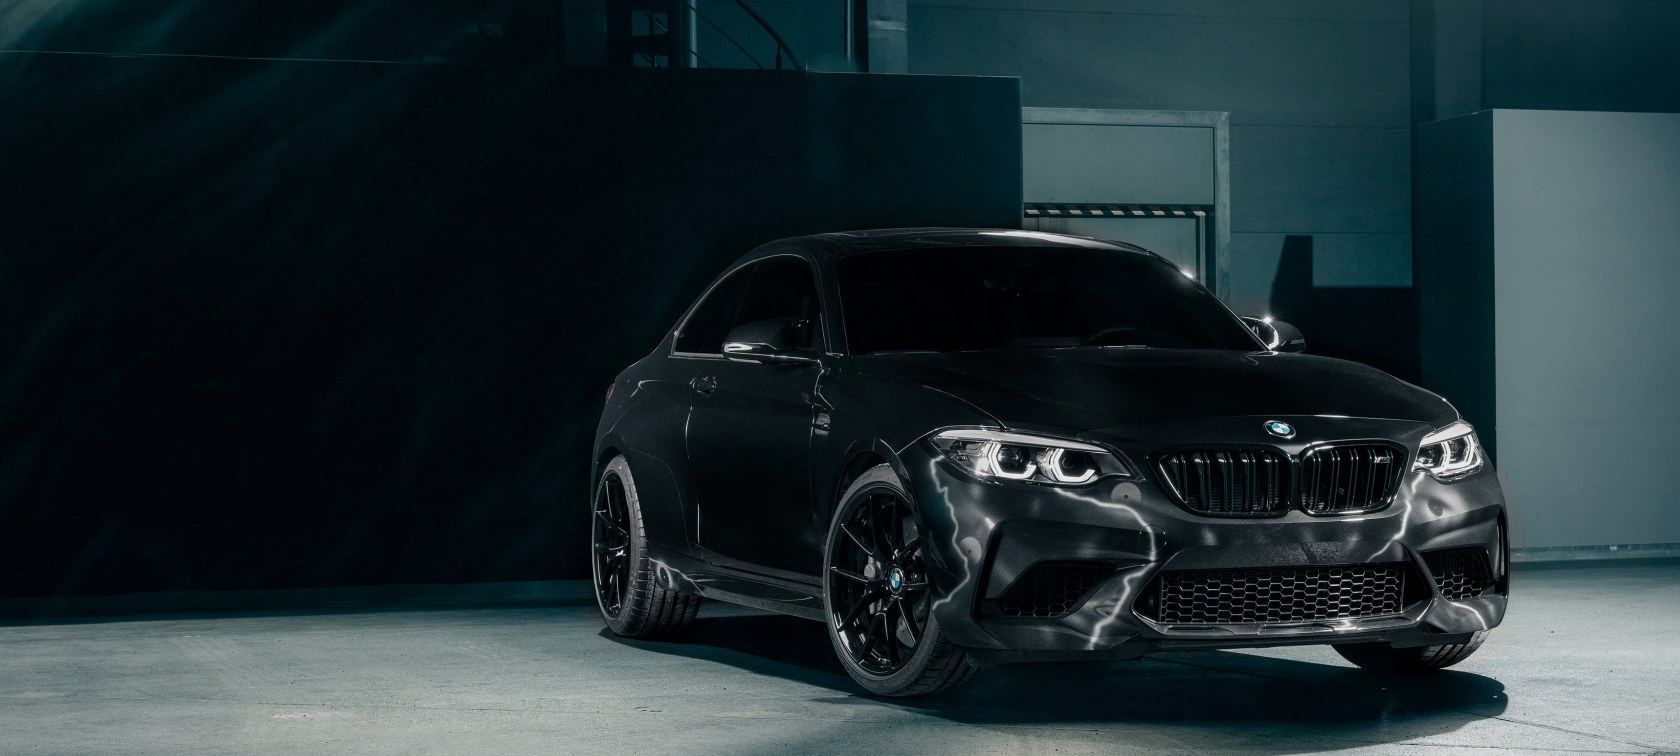 Front view of the BMW M2 Edition designed by FUTURA 2000